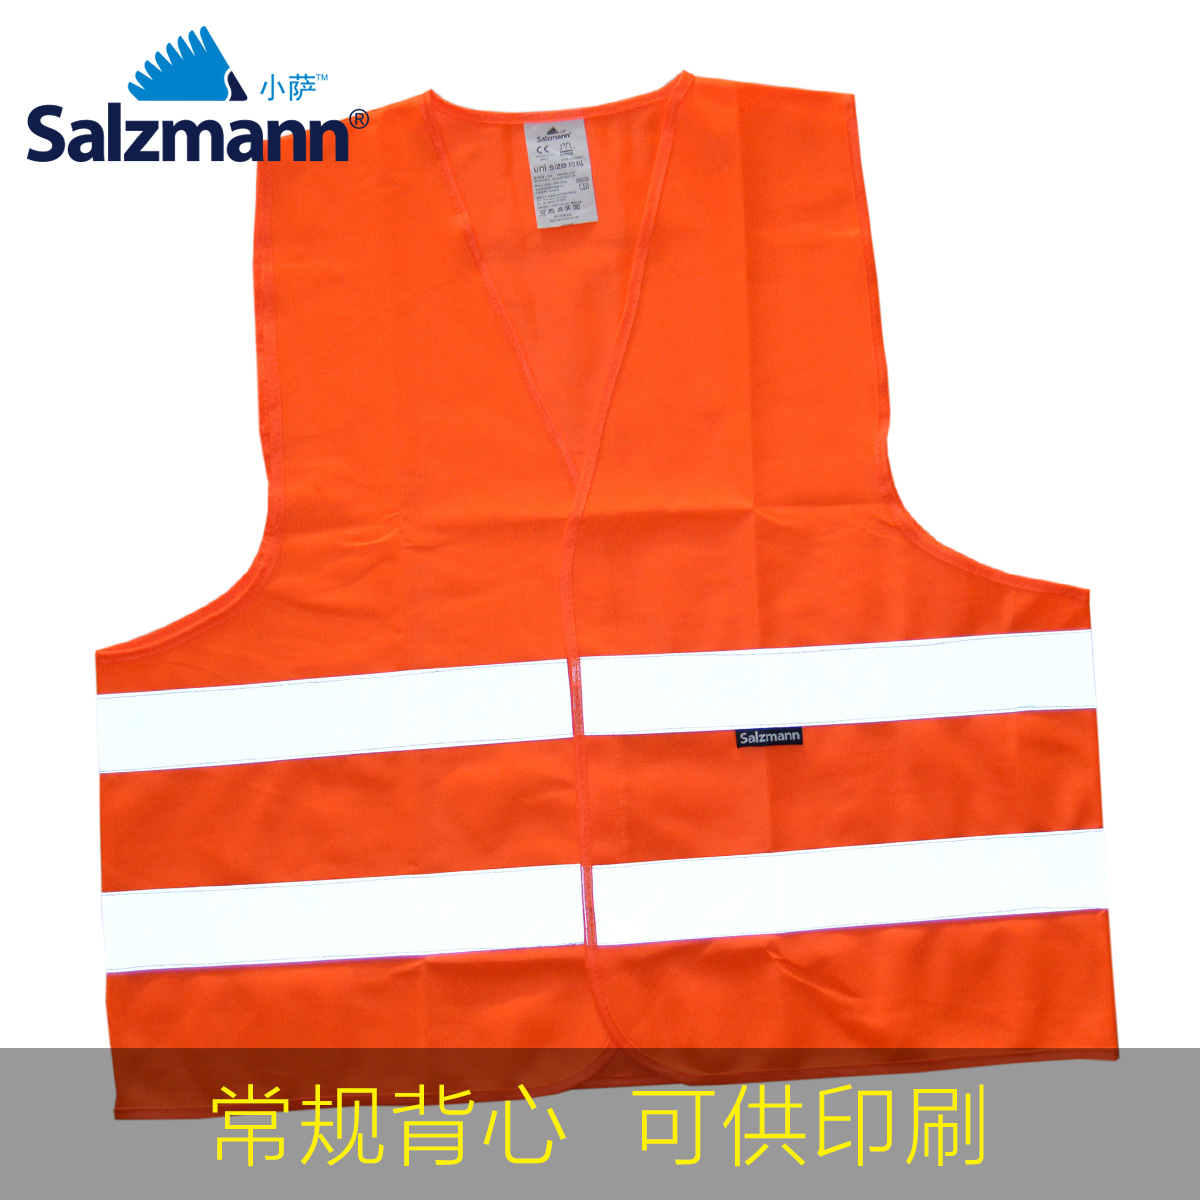 Orange Reflective vest Reflective waistcoat Traffic safety construction vest Railway cleaning road safety clothing printable